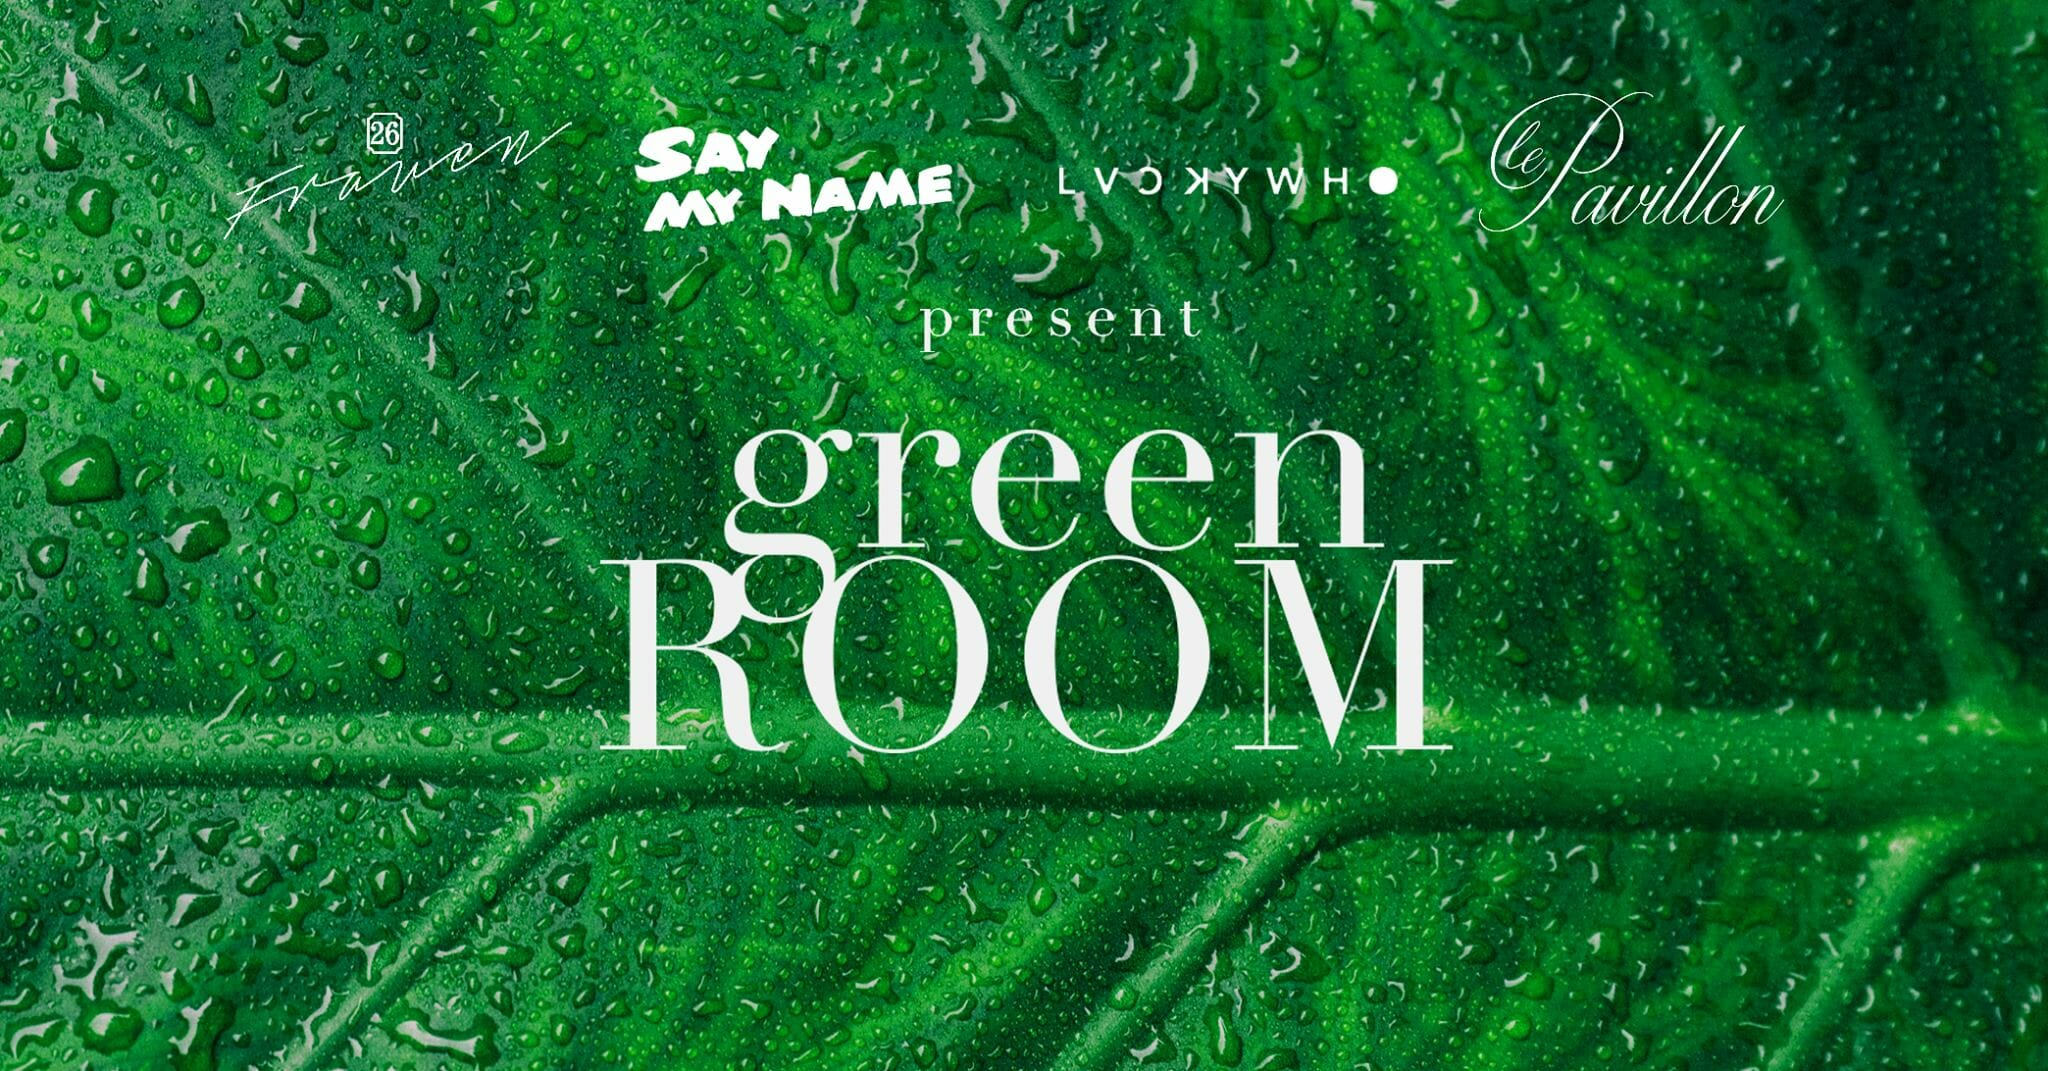 lucky-who-green-room2